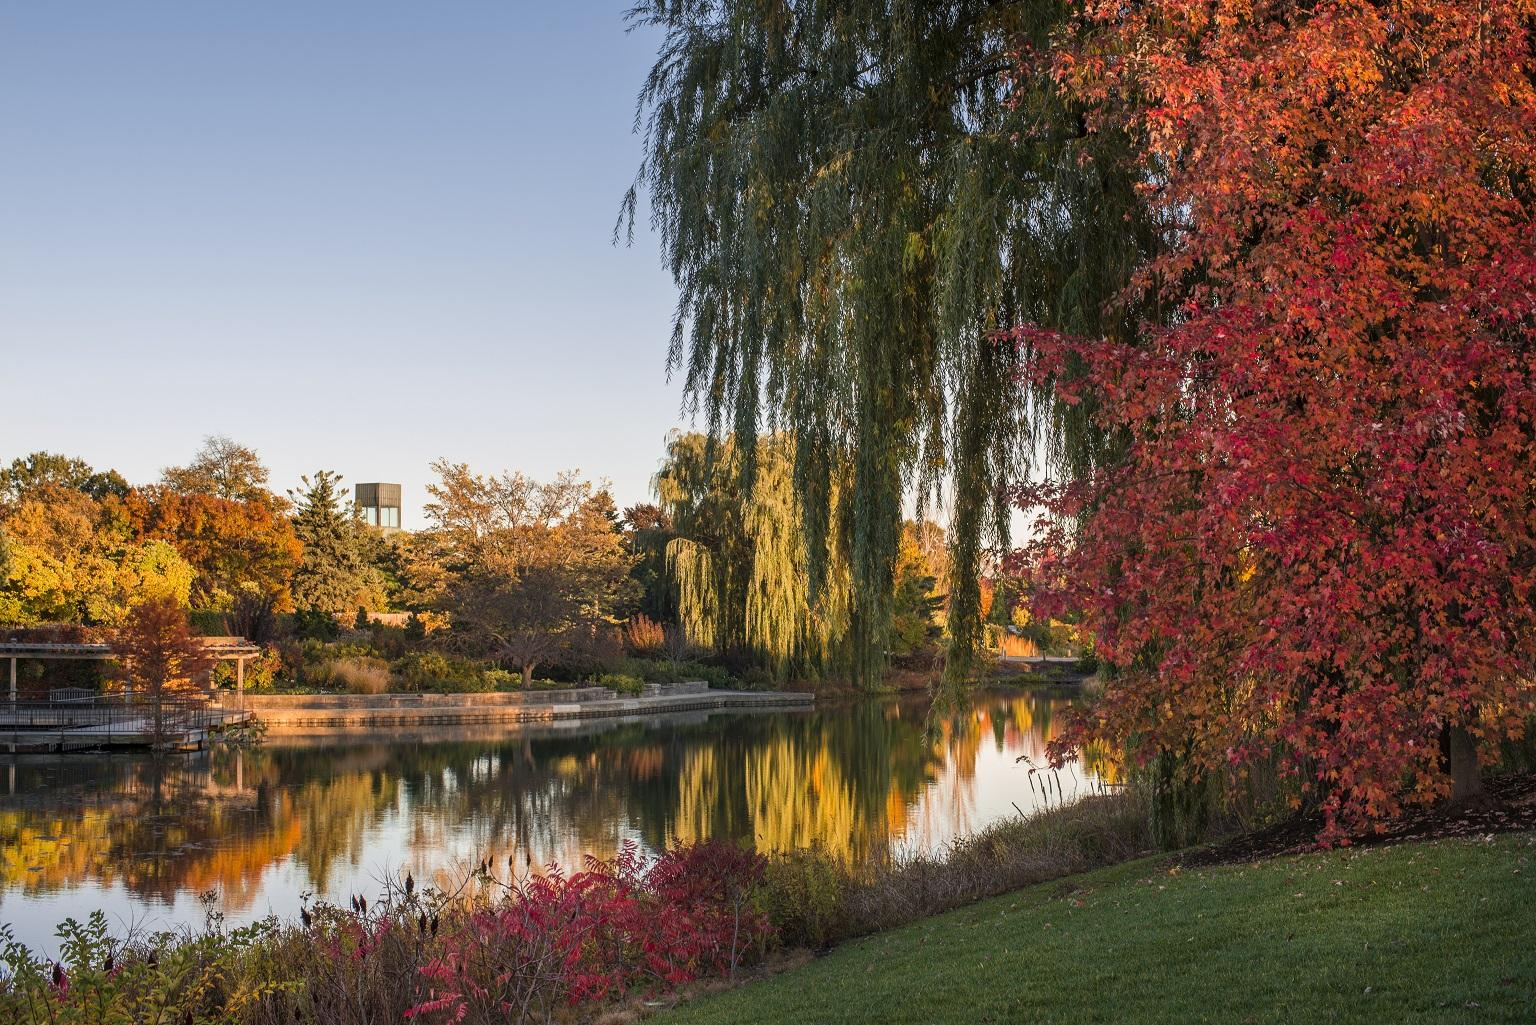 The Bulb Garden this fall at the Chicago Botanic Garden in Glencoe (Courtesy Chicago Botanic Garden)